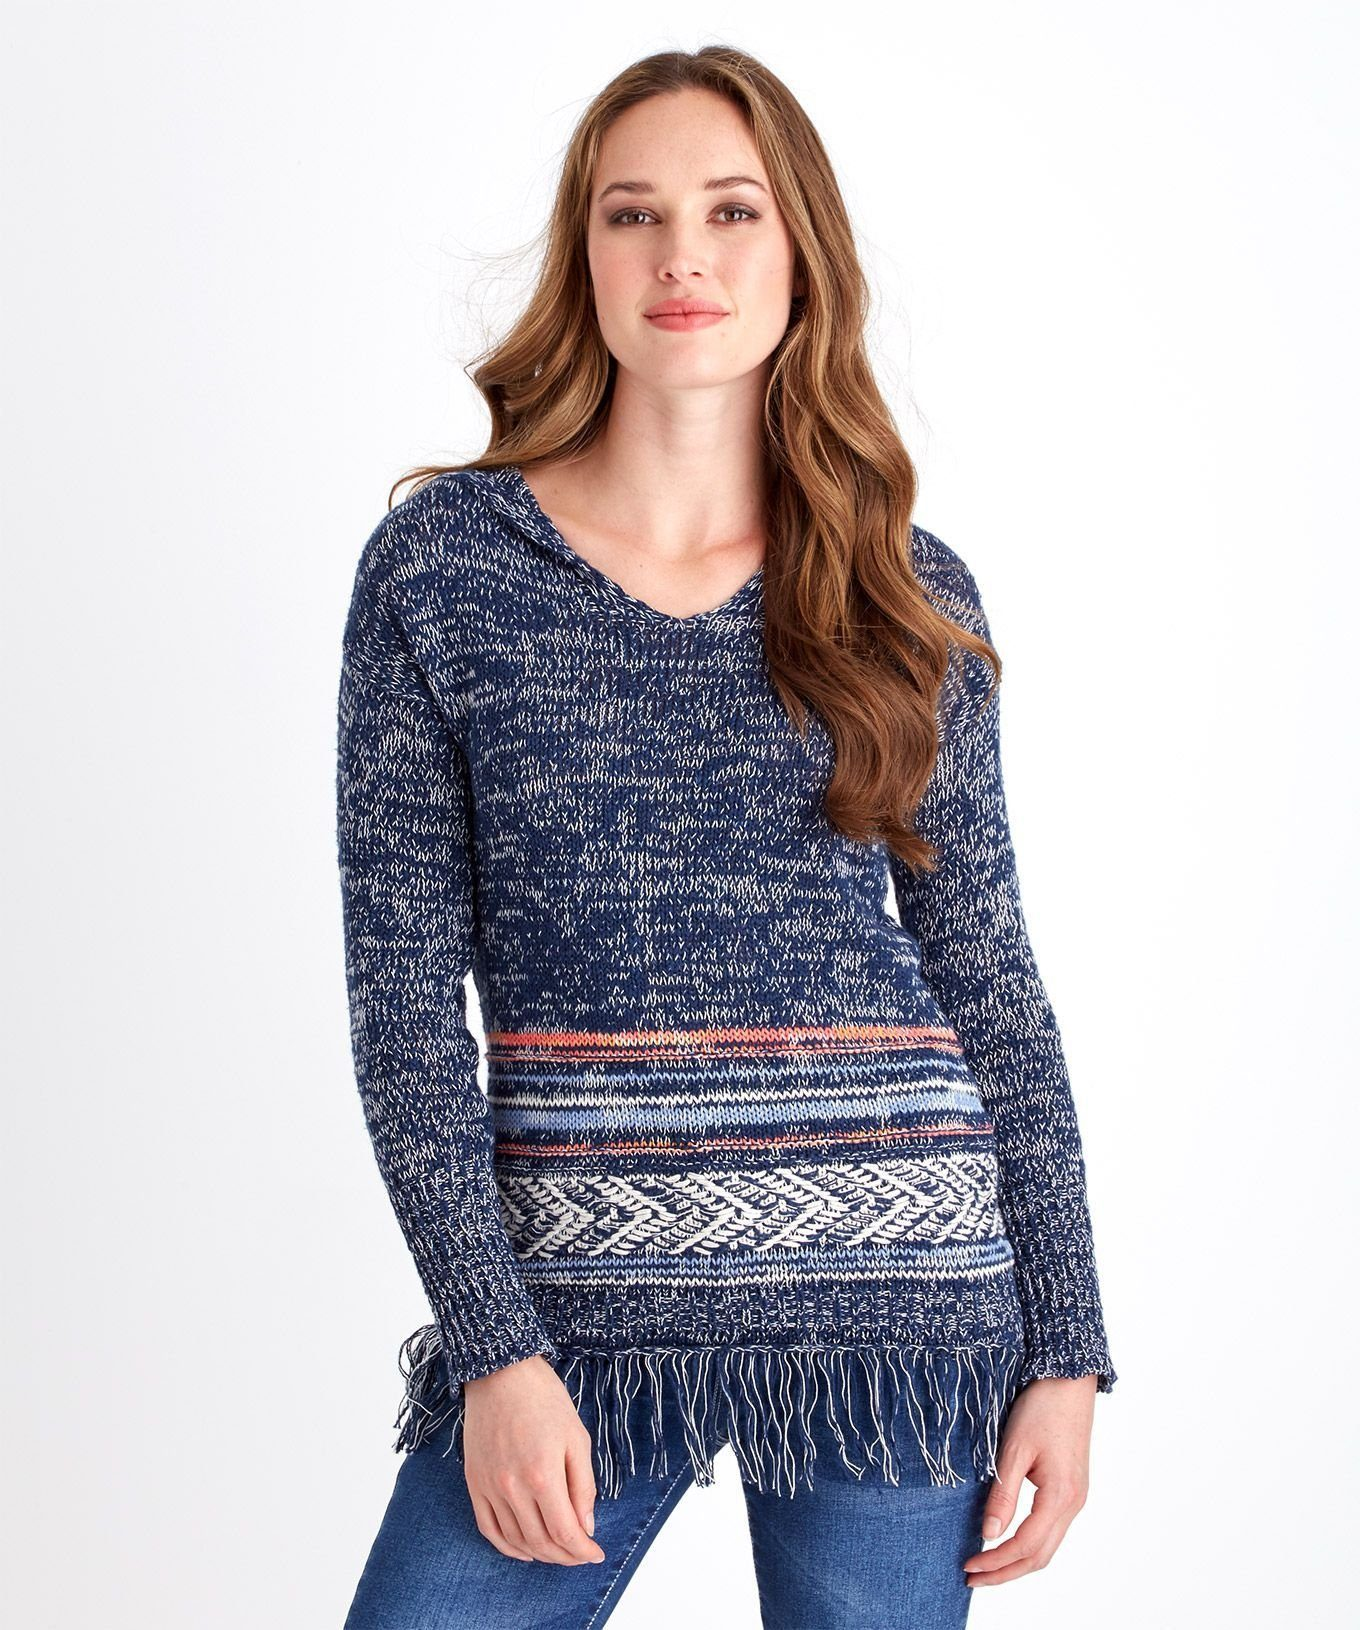 Joe Browns Kurzarmpullover »Boho-Strickpullover mit Fransensaum von Joe Browns für Damen«